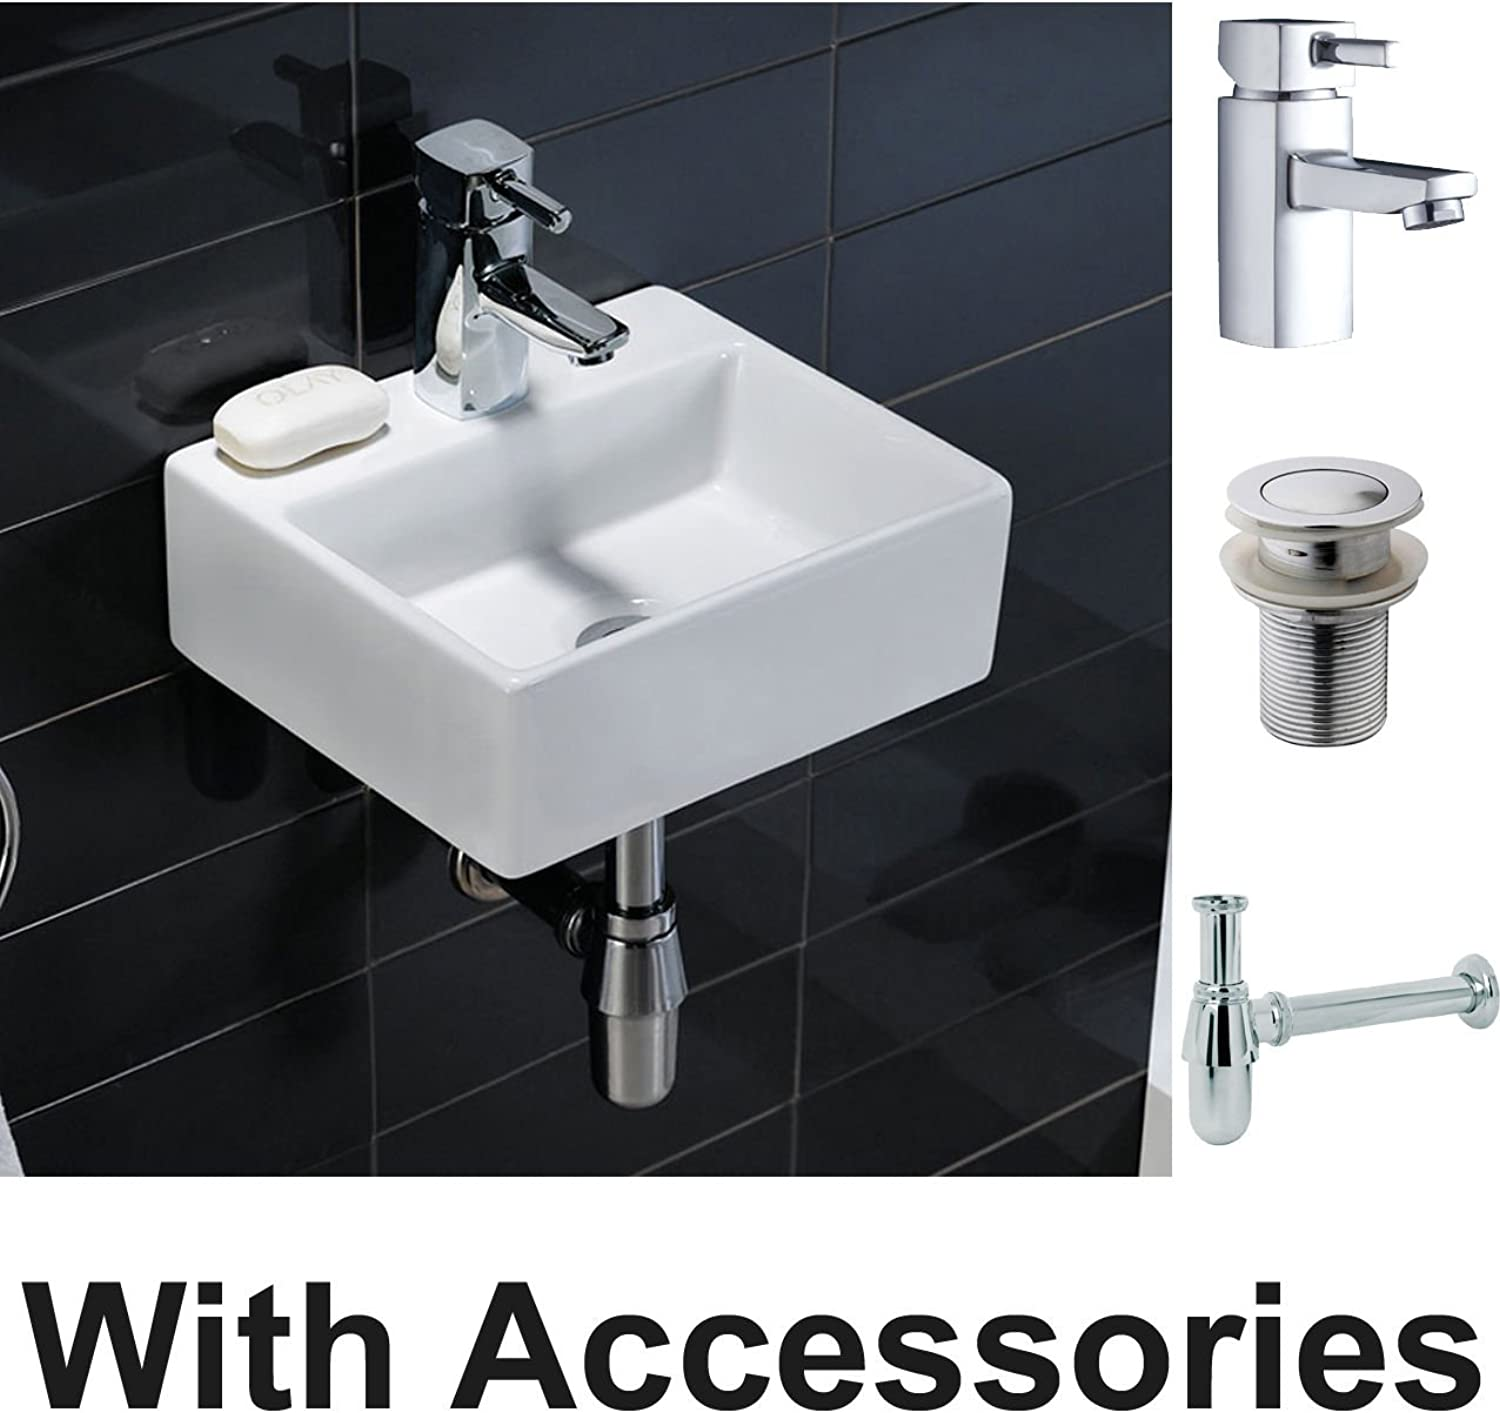 Generic ....m Bas Sink Sink Sink Tap ste Tra Mixer Waste Trap SET Sink Tap Mix Wall Hung Cloakroom Compact Square Ceramic c Wa Cloakroom Basin Square Cerami 0776a5